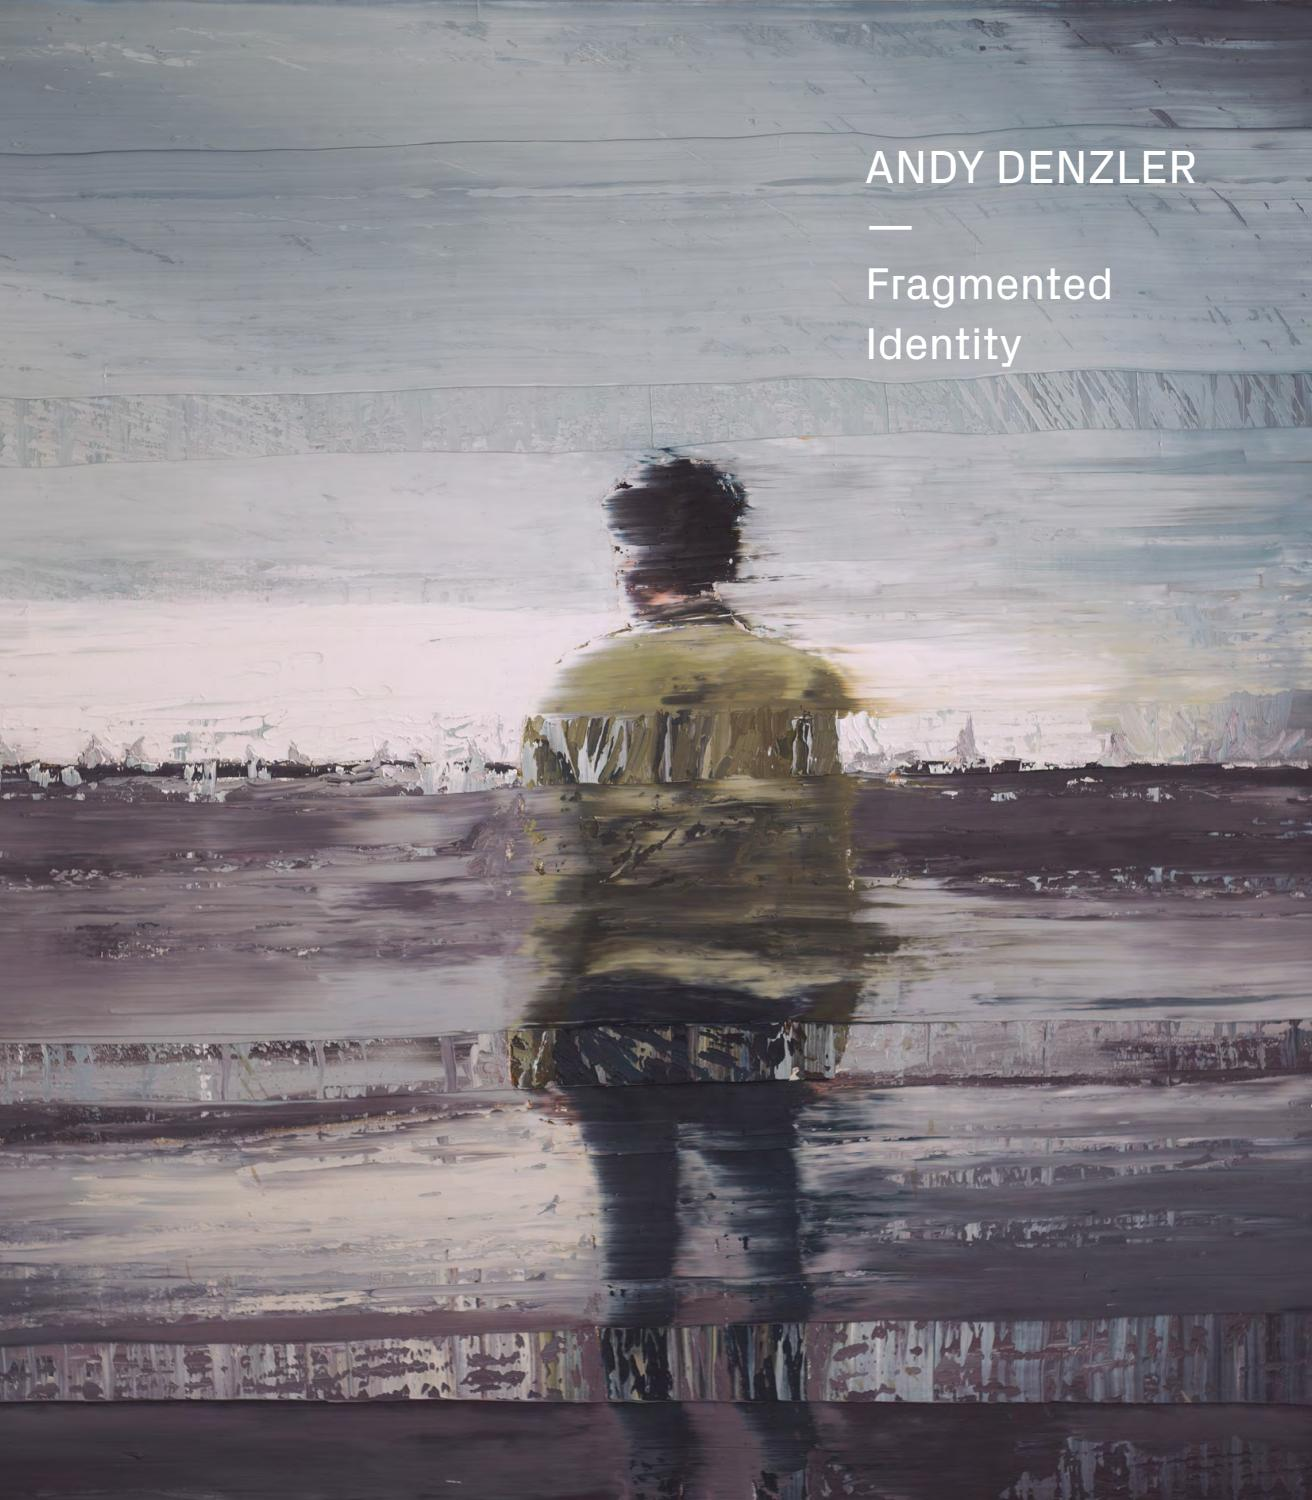 Ebook andy denzler og monaco by opera gallery art et antiquits issuu fandeluxe Image collections